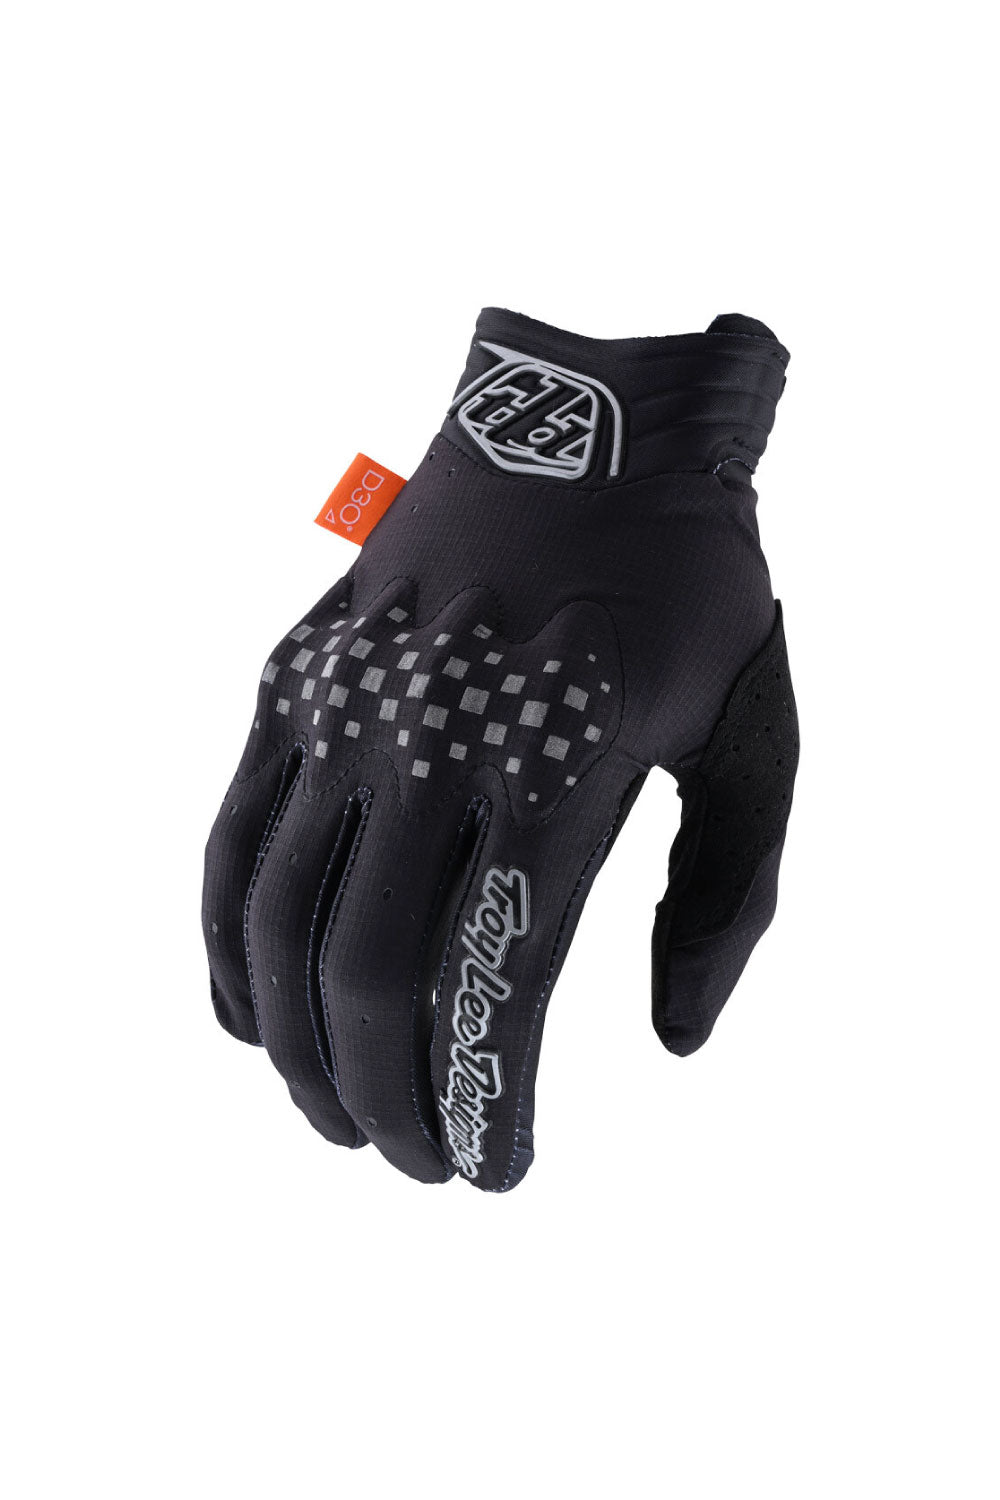 Troy Lee Designs 2020 Gambit MTB Bike Gloves